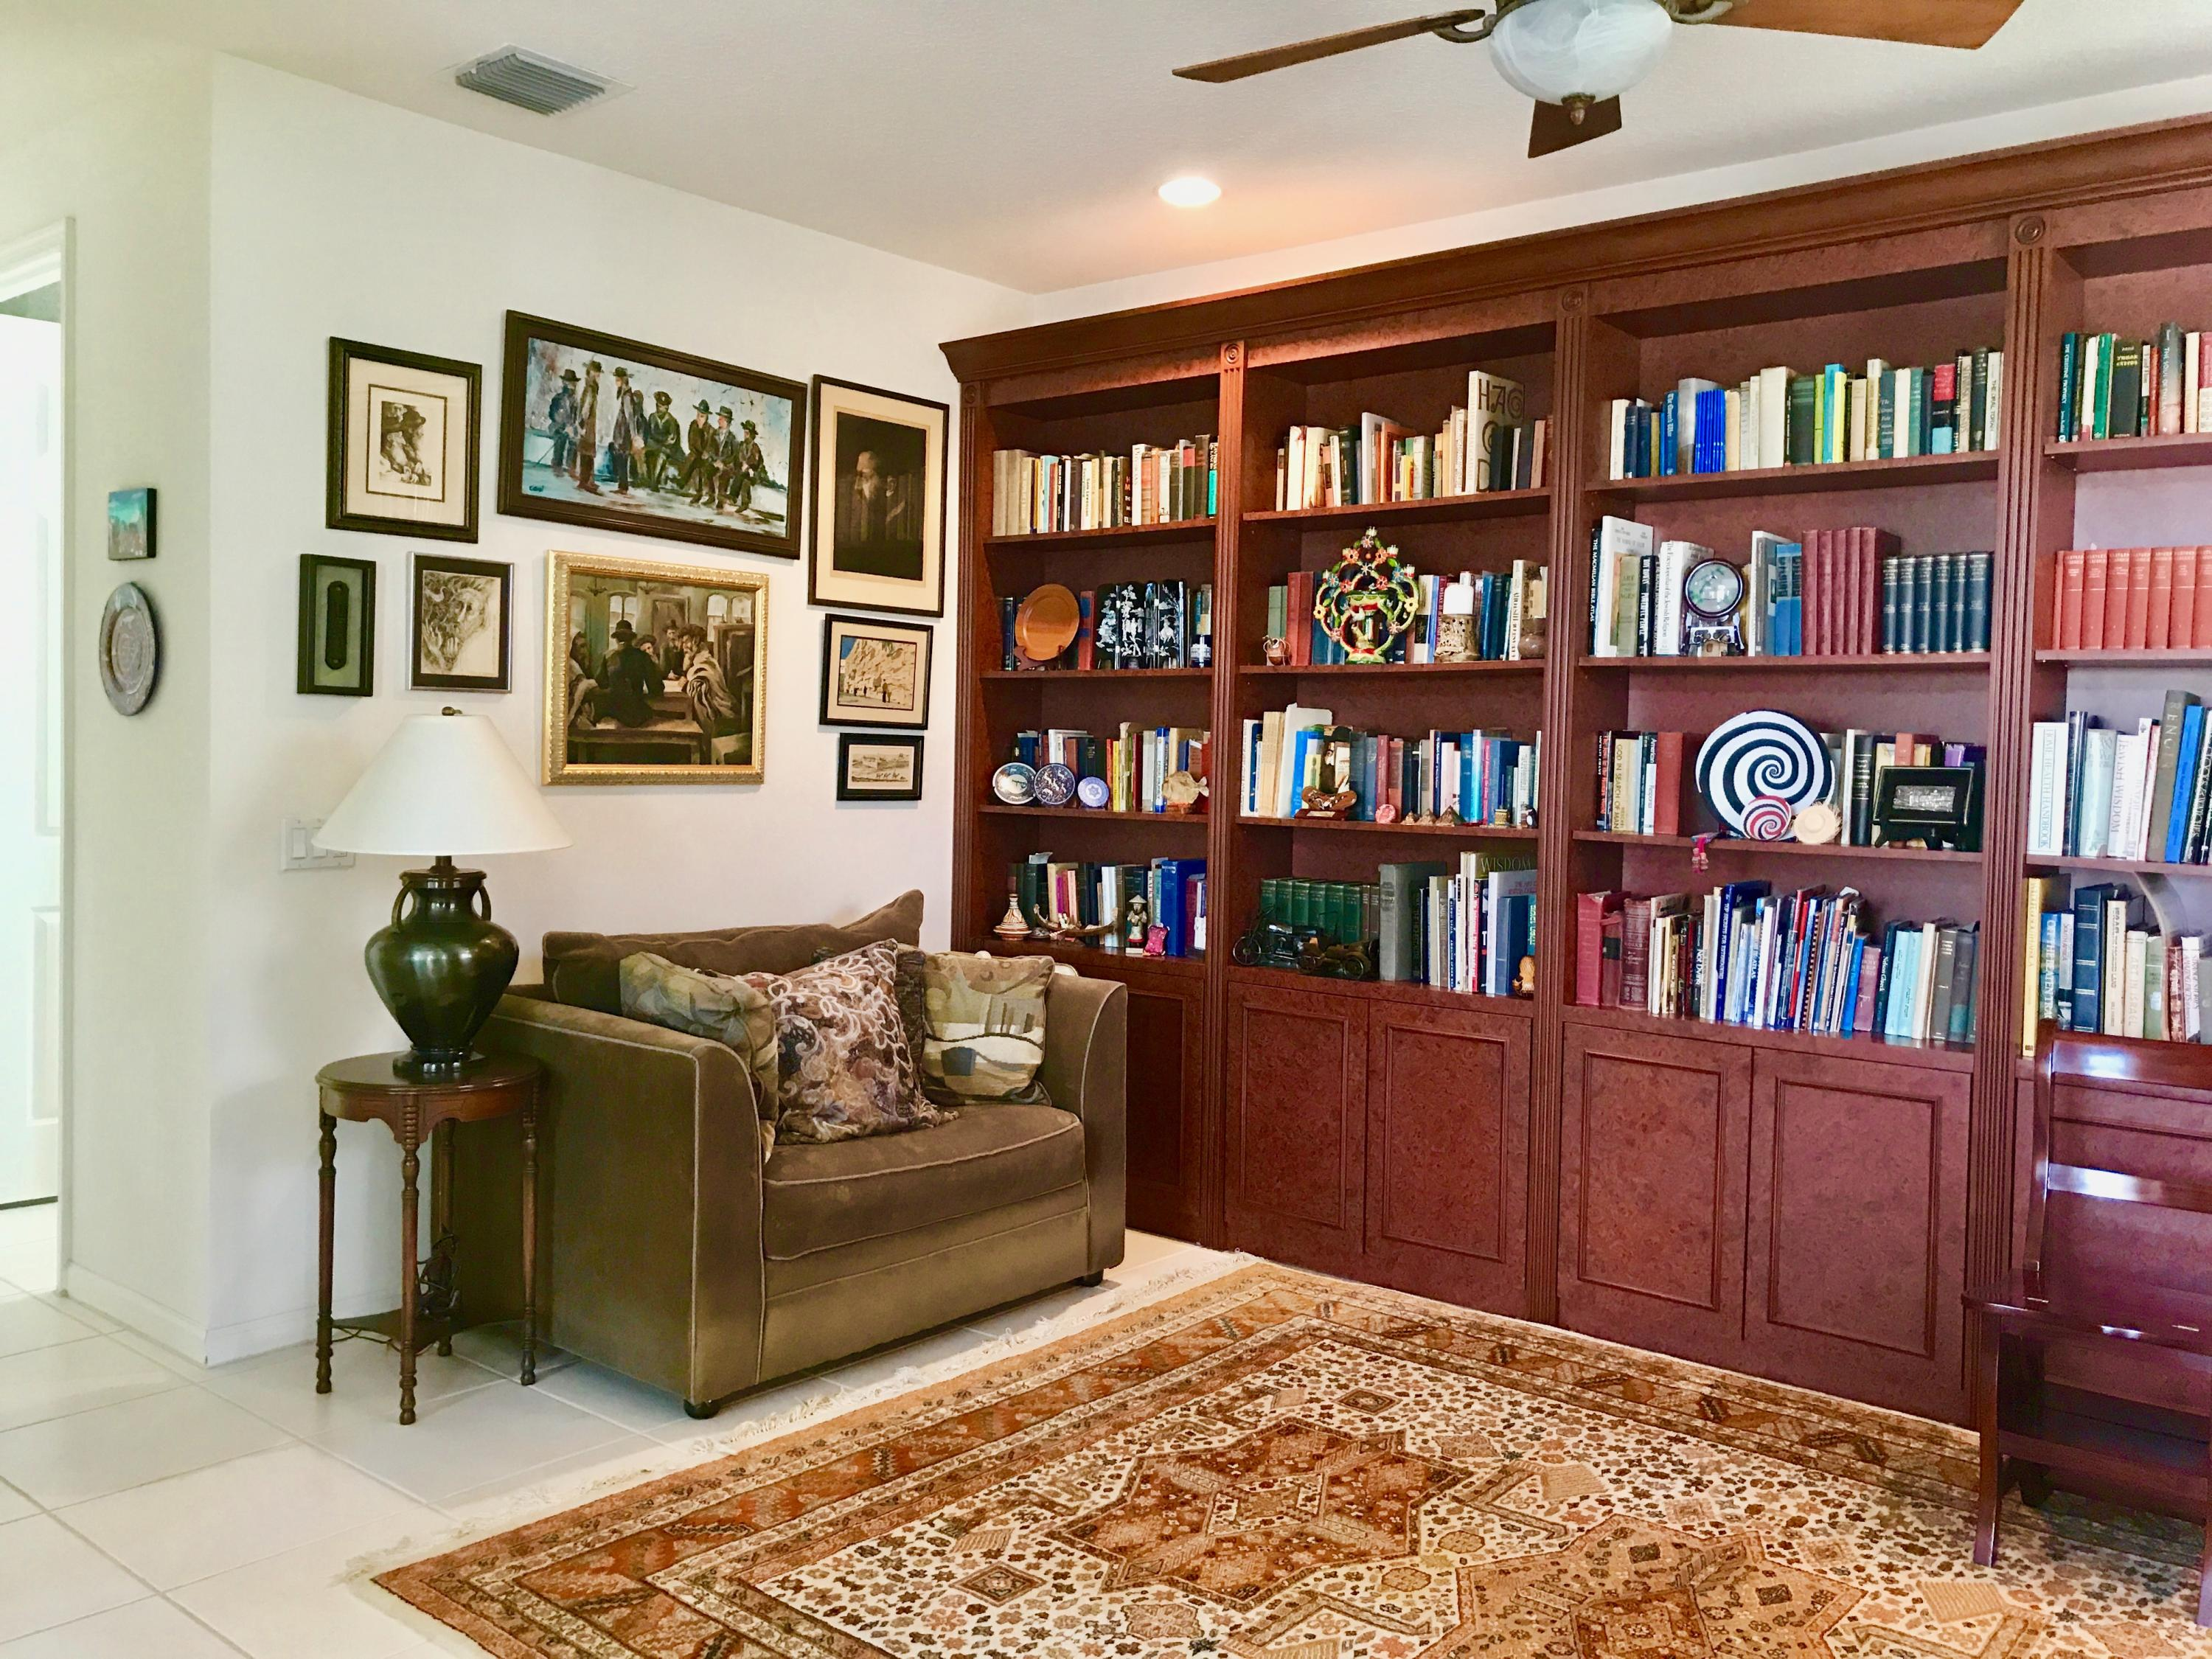 Library/Den could be 3rd bedroom